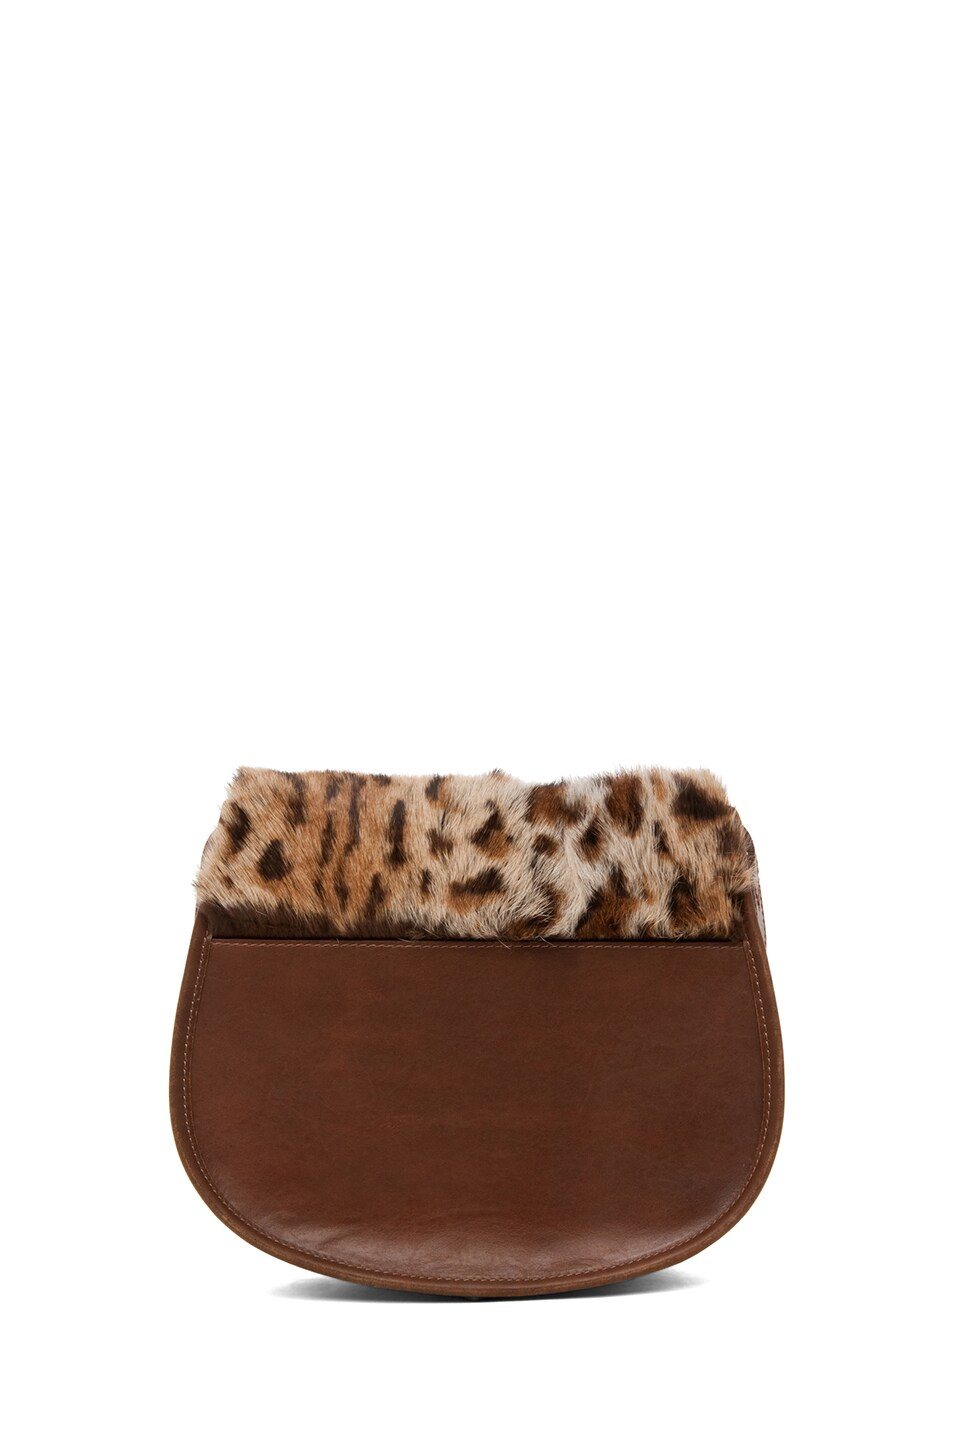 Image 2 of A.P.C. Sac Besace Leopard Bag in Caramel